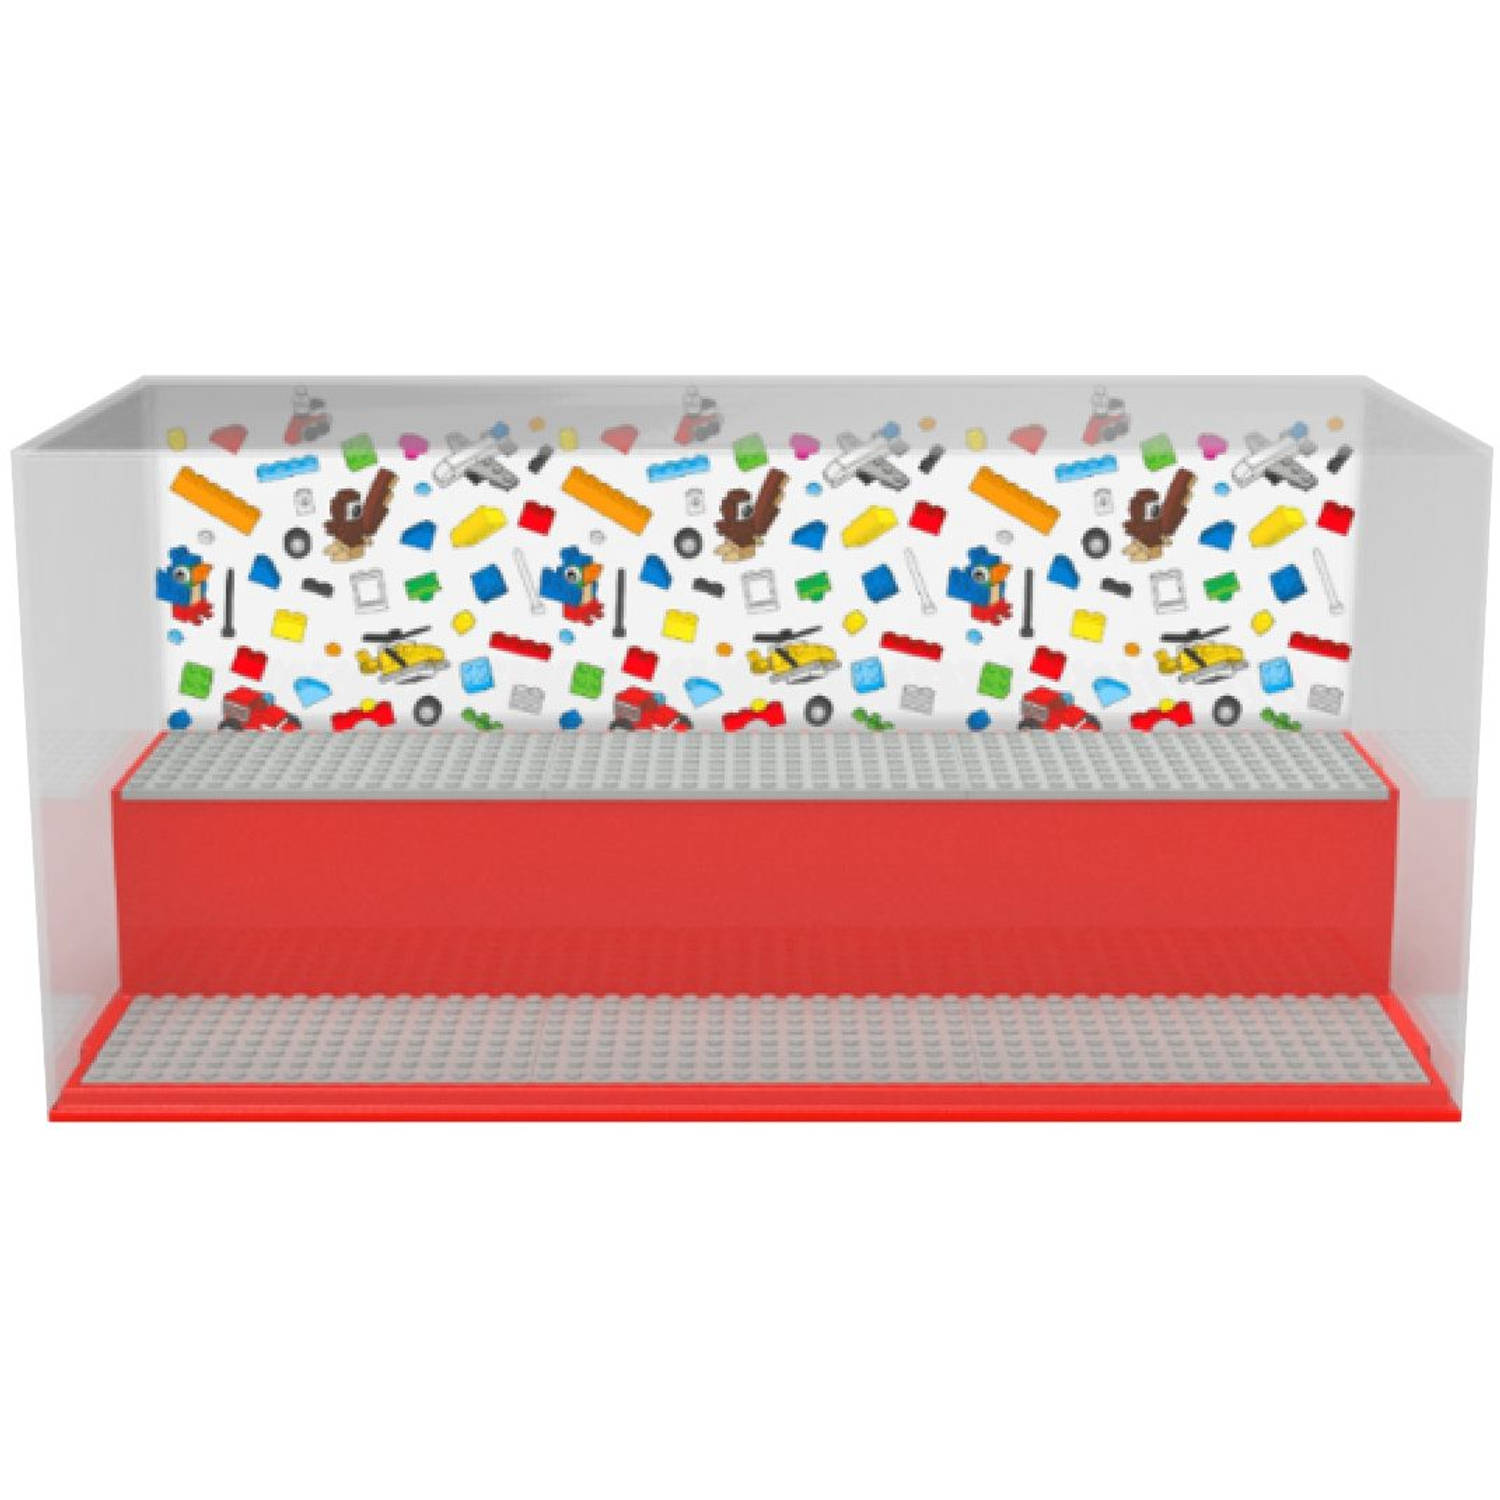 Opbergbox LEGO play & display rood